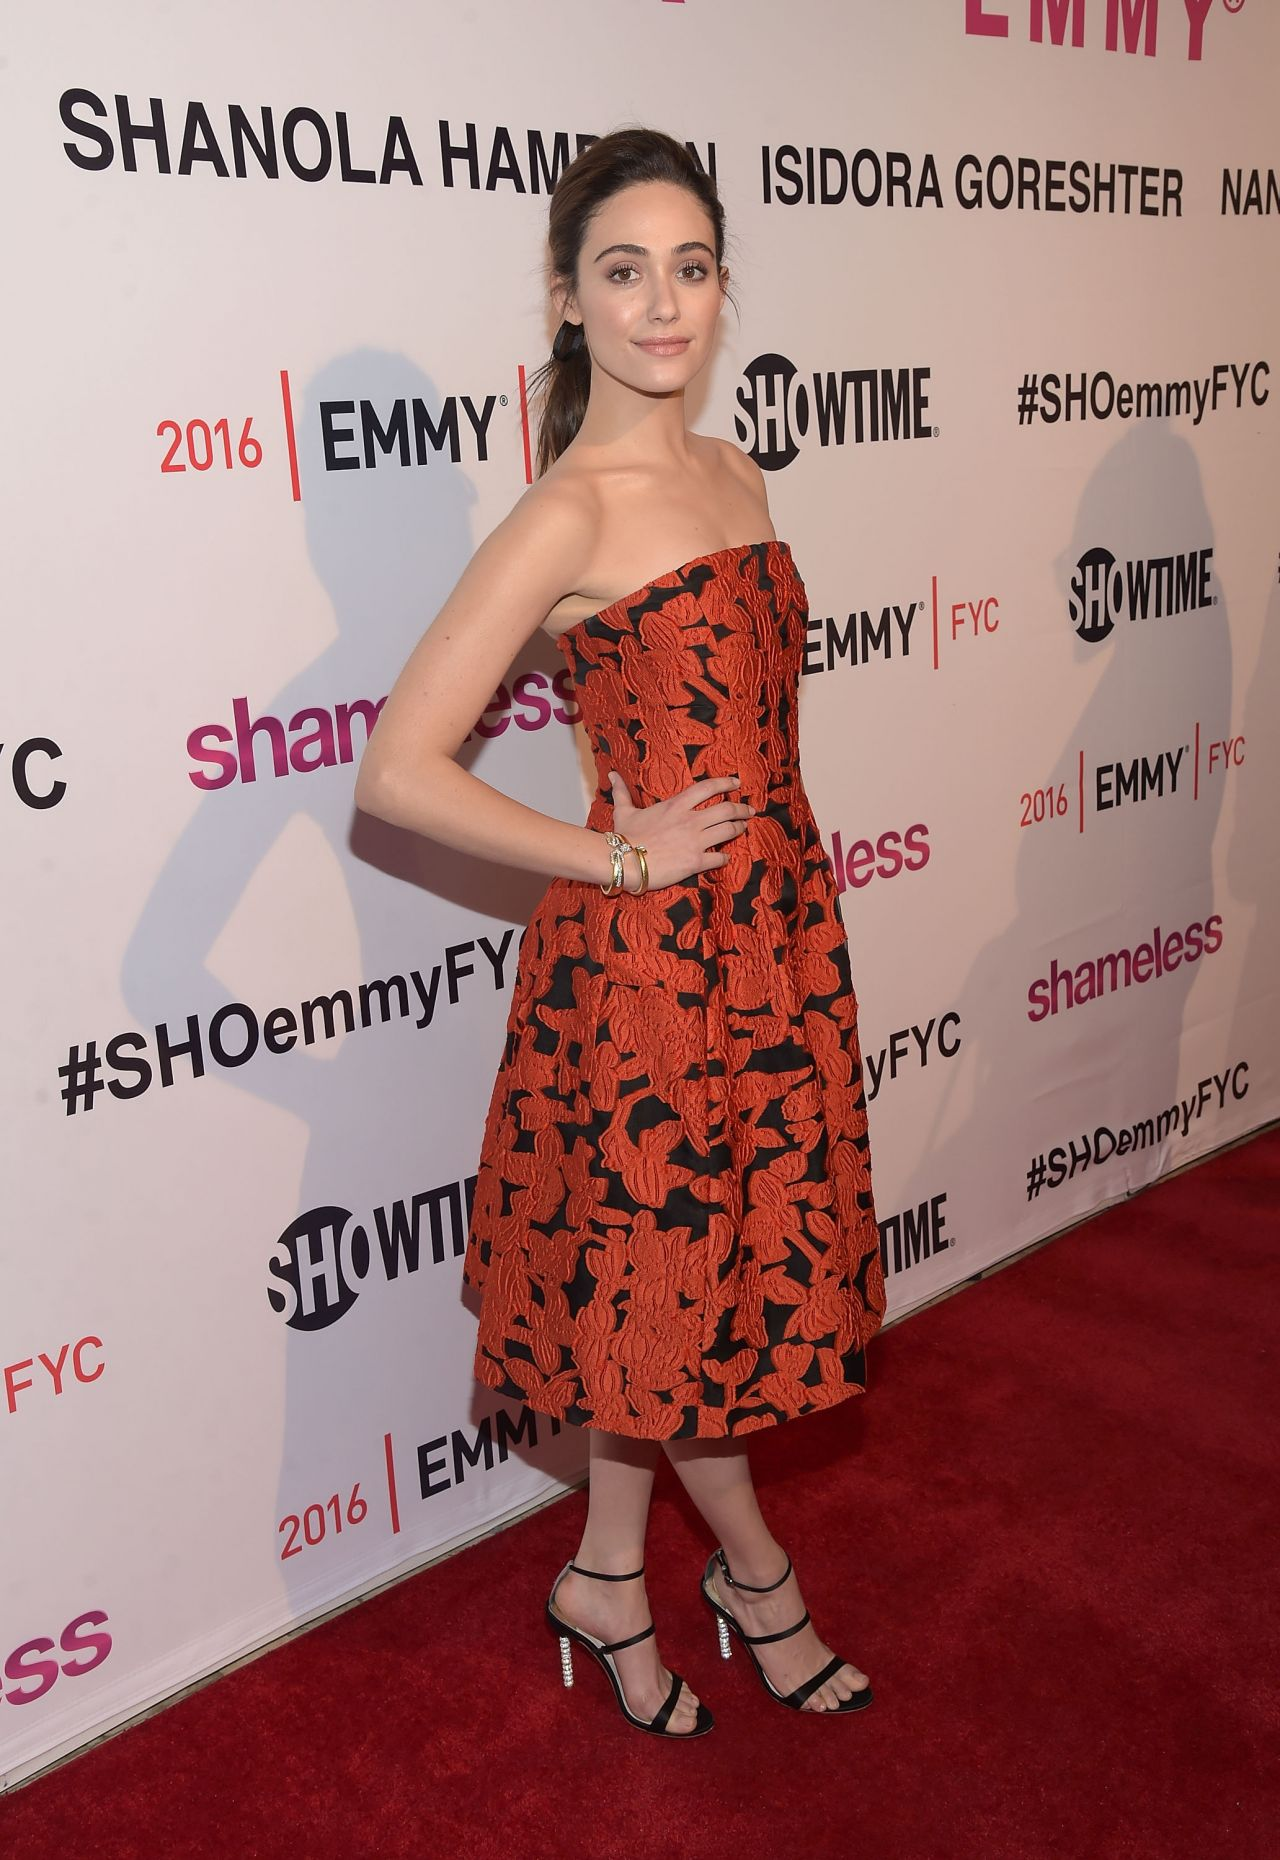 emmy-rossum-screening-and-panel-discussion-with-the-women-of-shameless-in-west-hollywood-7